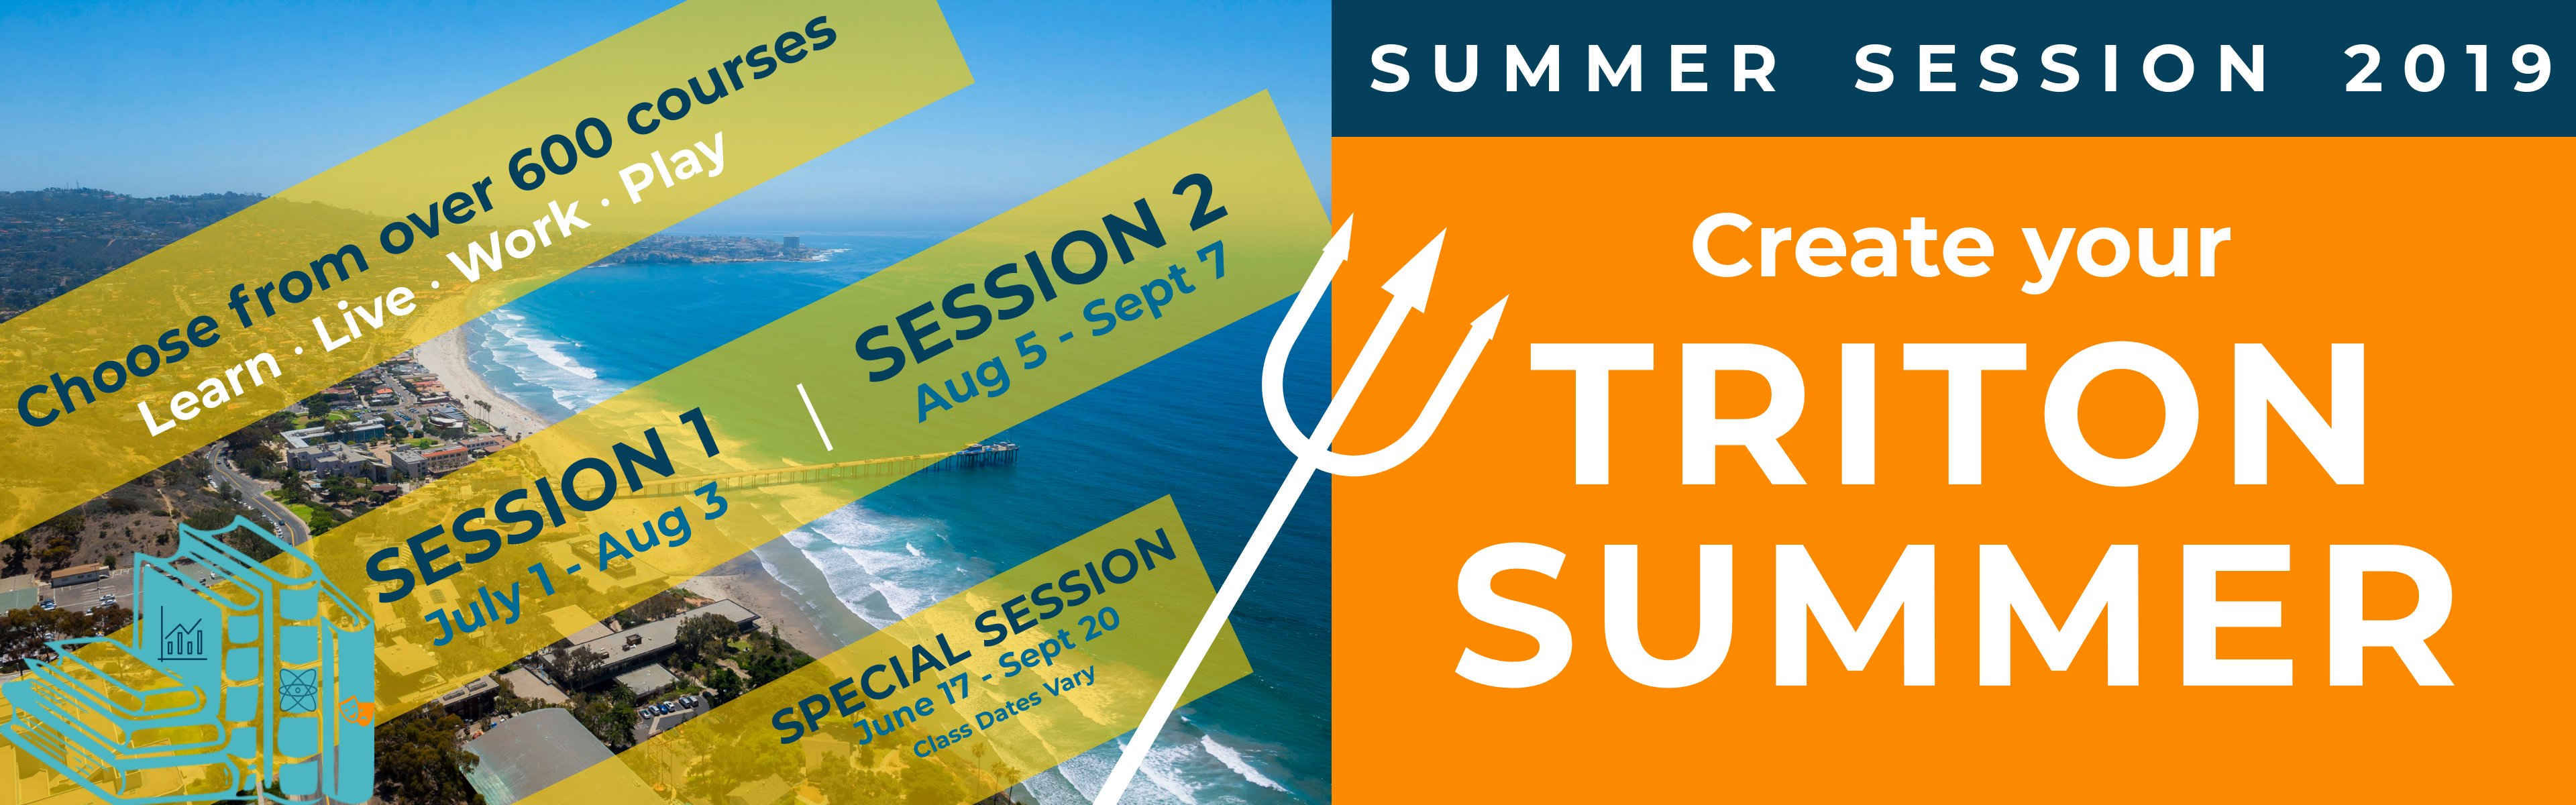 Uc San Diego Summer Session Calendar 2019 Ucsd